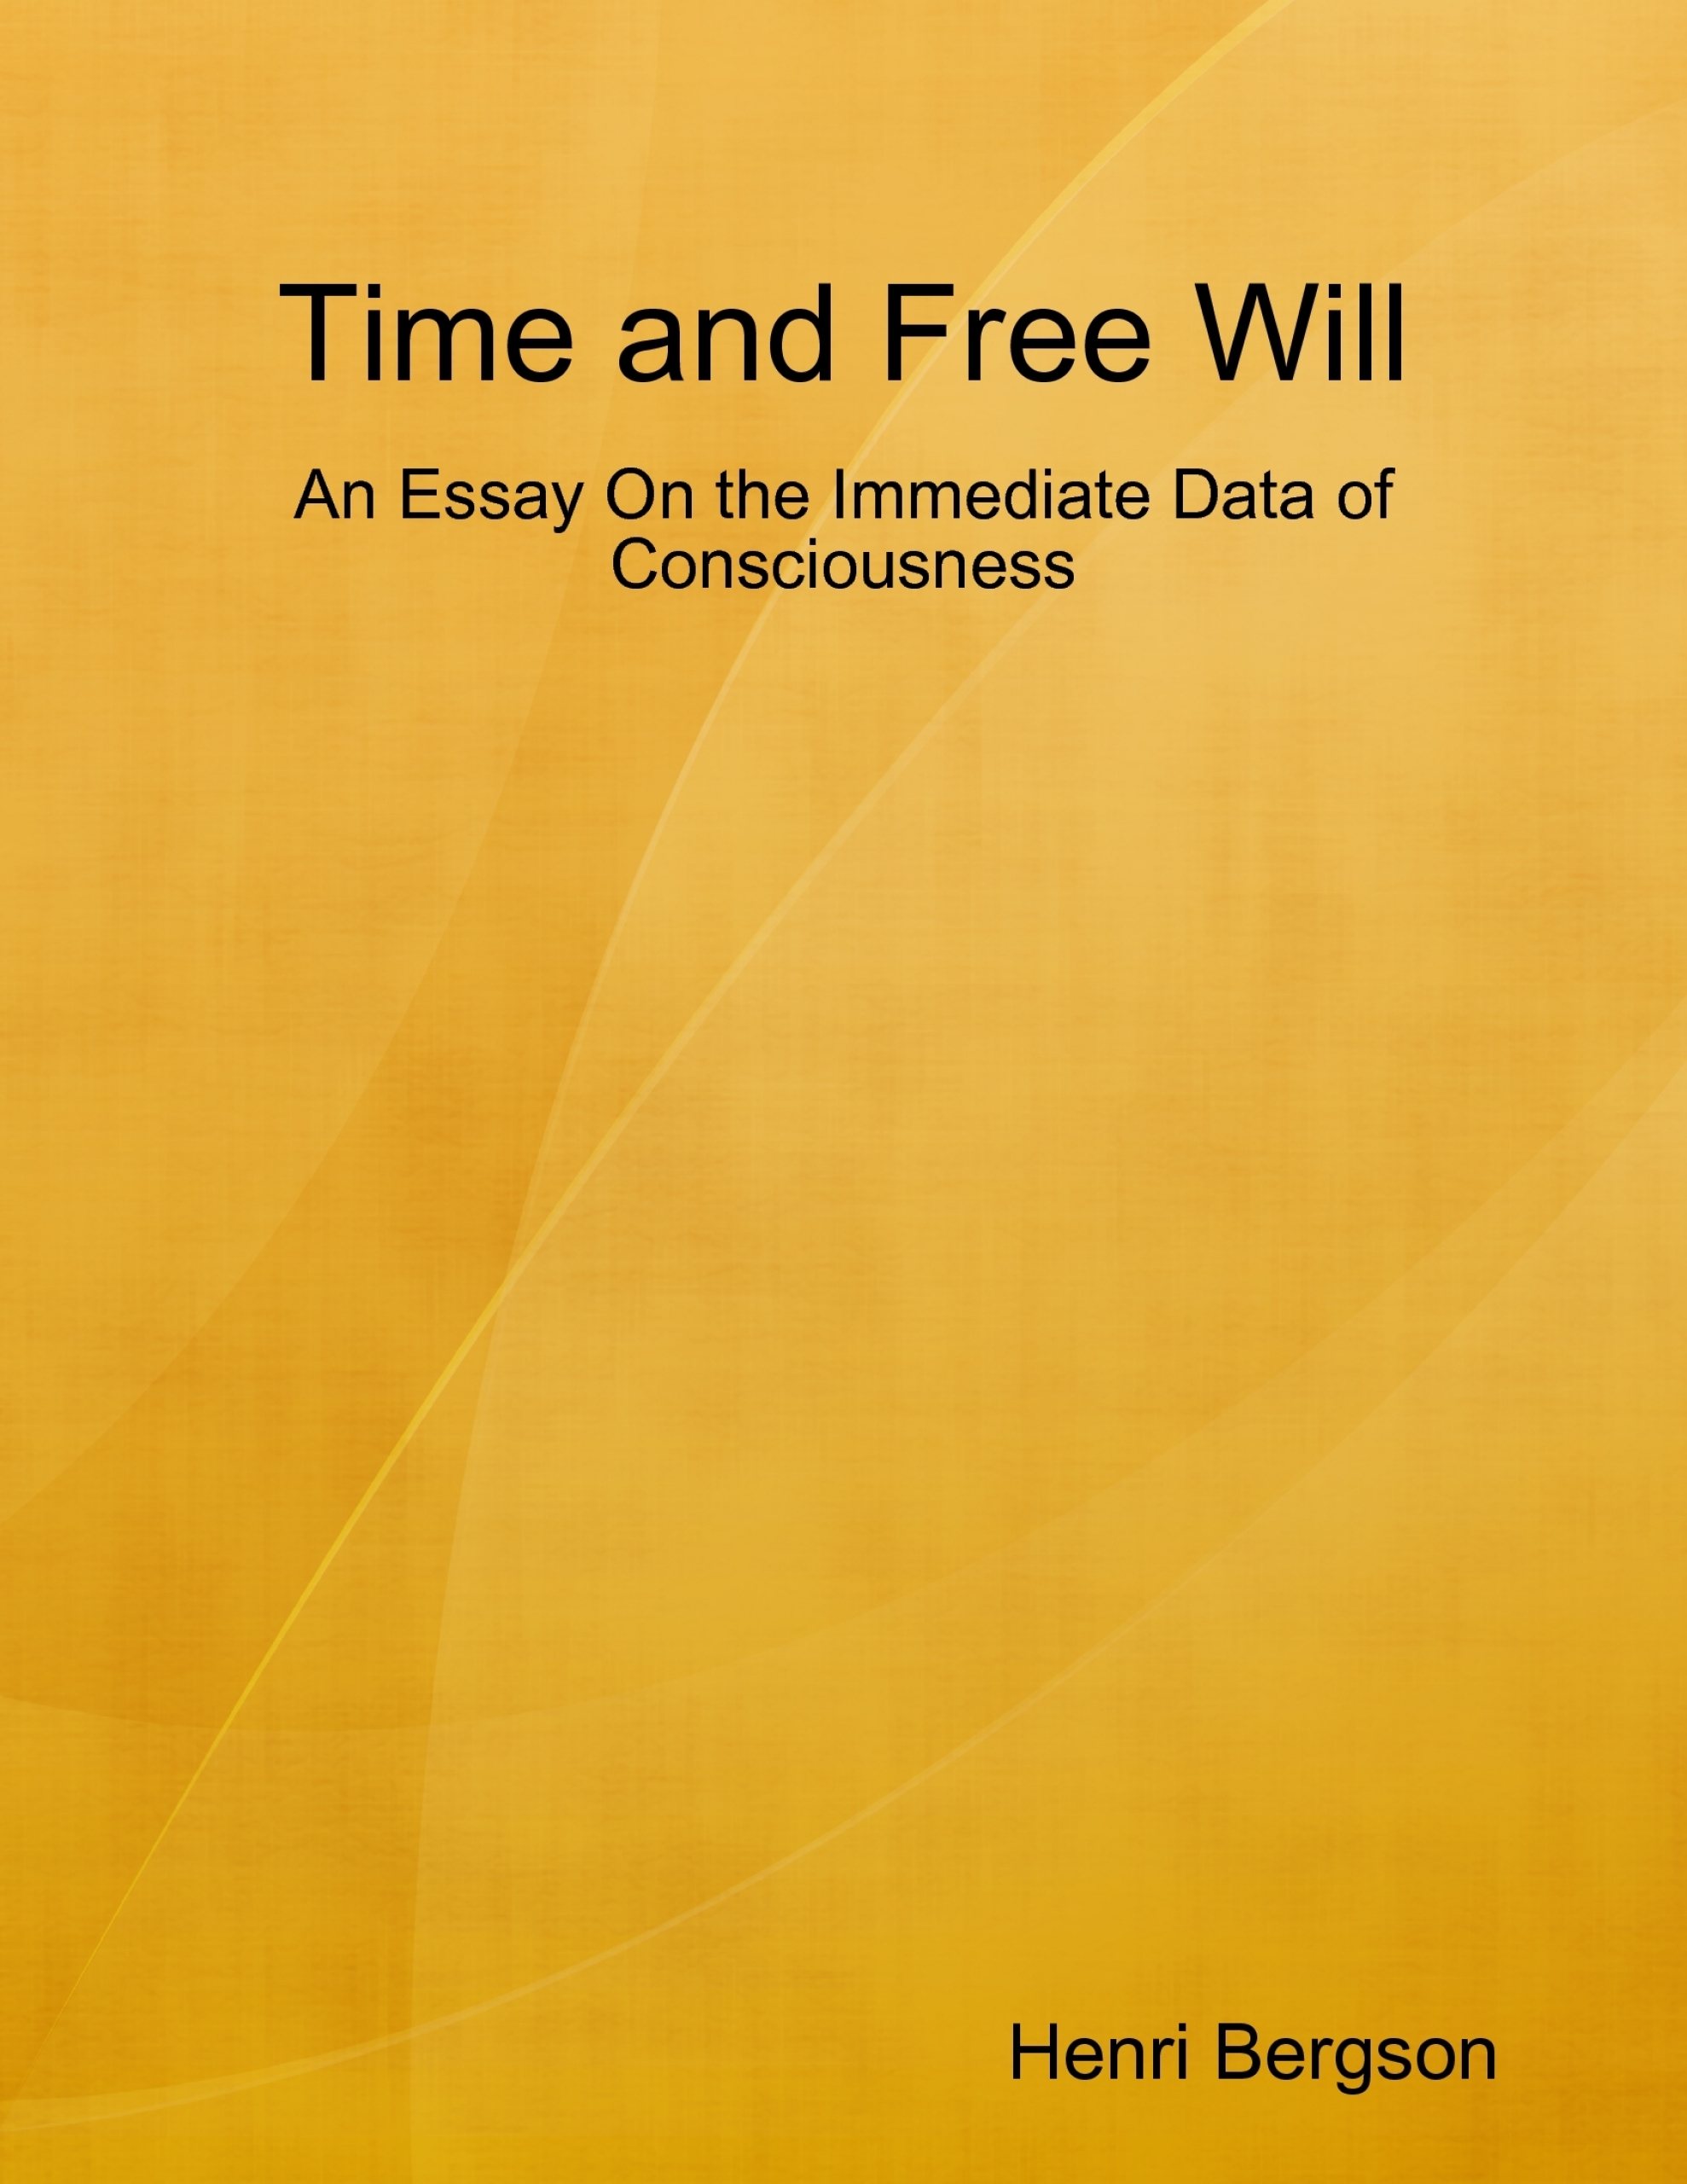 an essay on free will and the human consience 648 words essay on obedience the modern philosopher regards human beings as instruments of the social will in following our conscience.